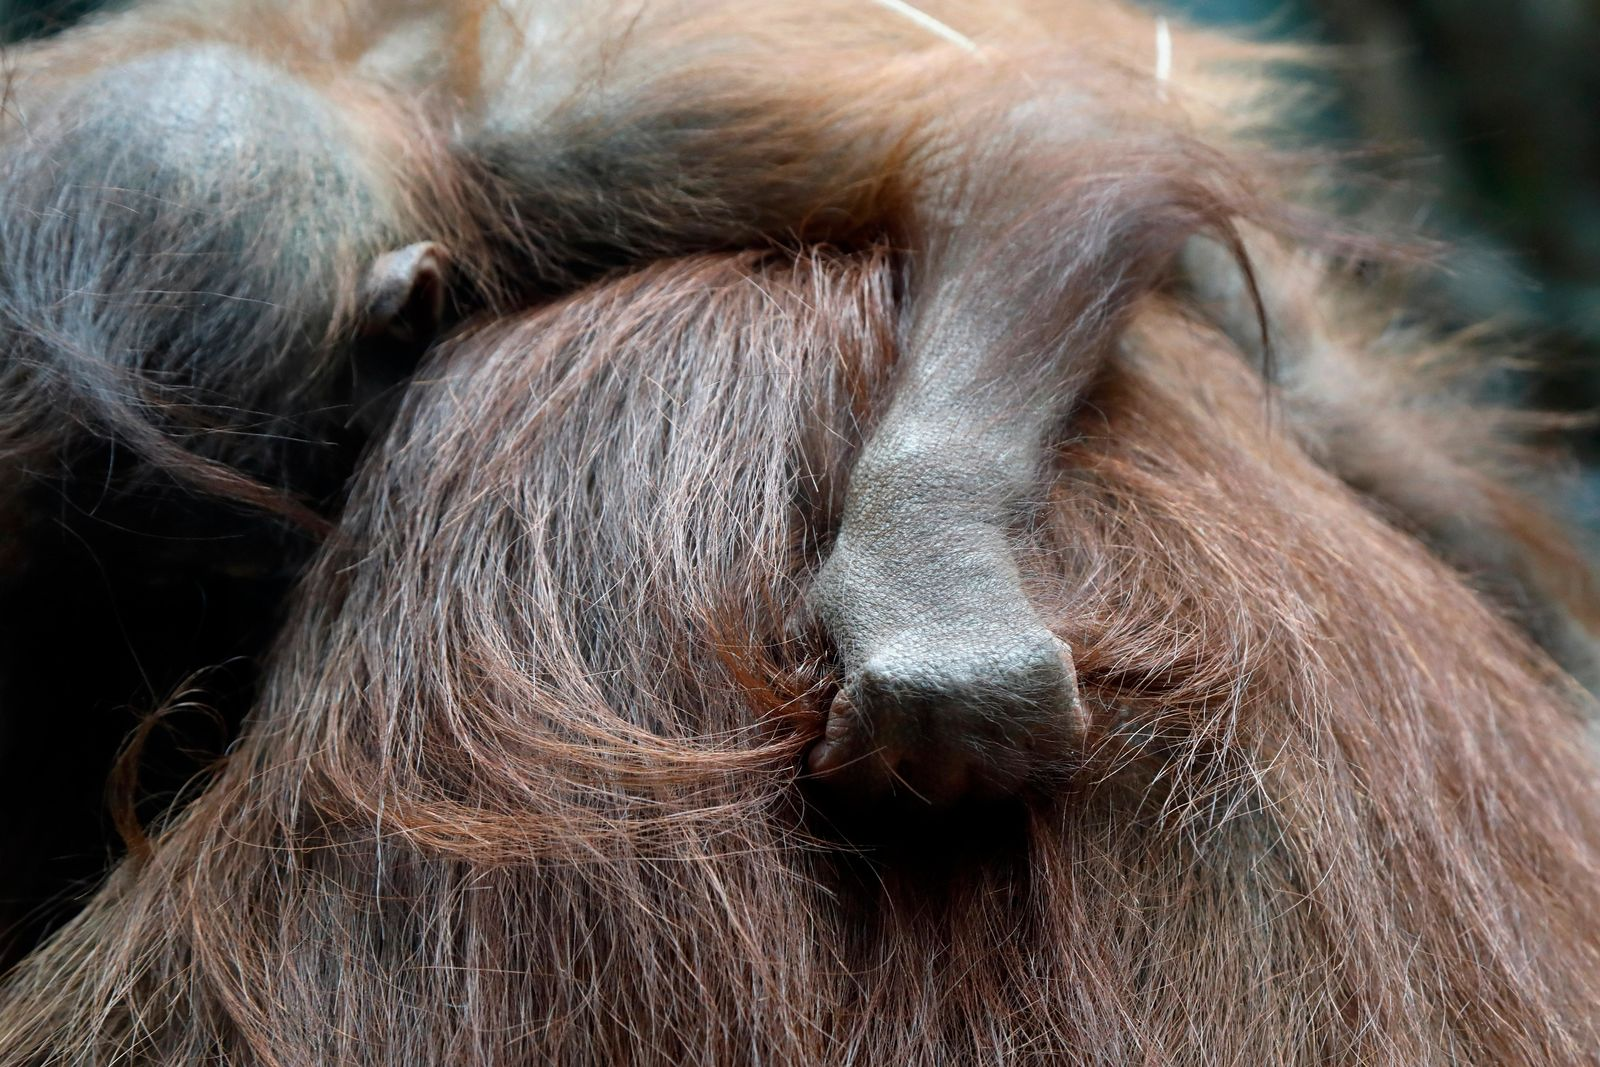 Java, a 7-months-old orangutan, sleeps on the back of his mother, Theodora, at the Jardin des Plantes zoo, in Paris, Sunday, June 16, 2019. (AP Photo/Thibault Camus)